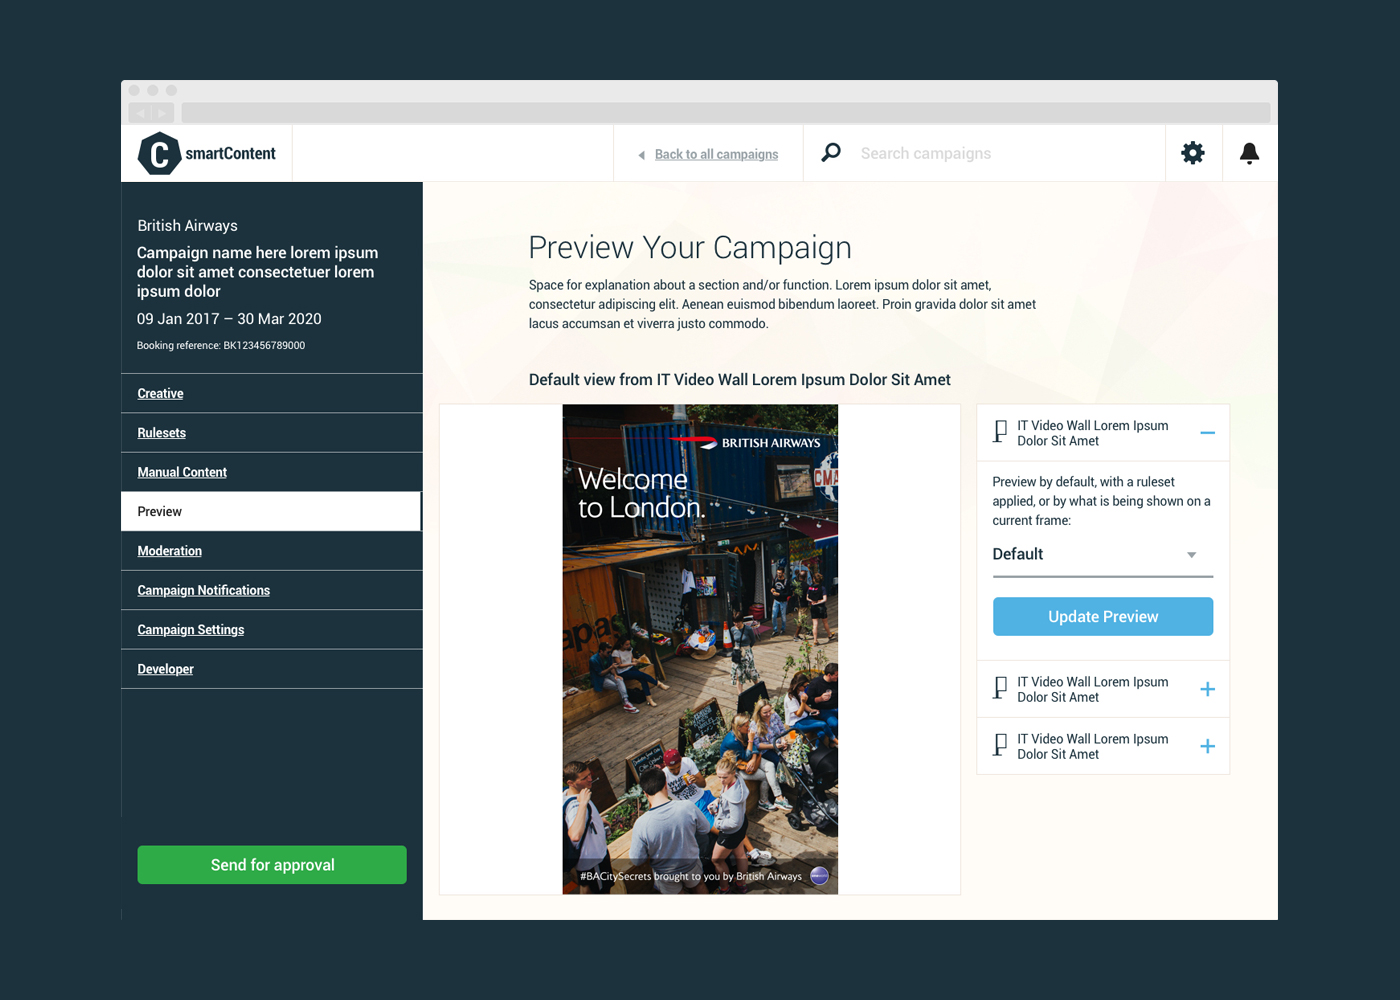 An example screenshot depicting how a user could preview their campaign before committing.